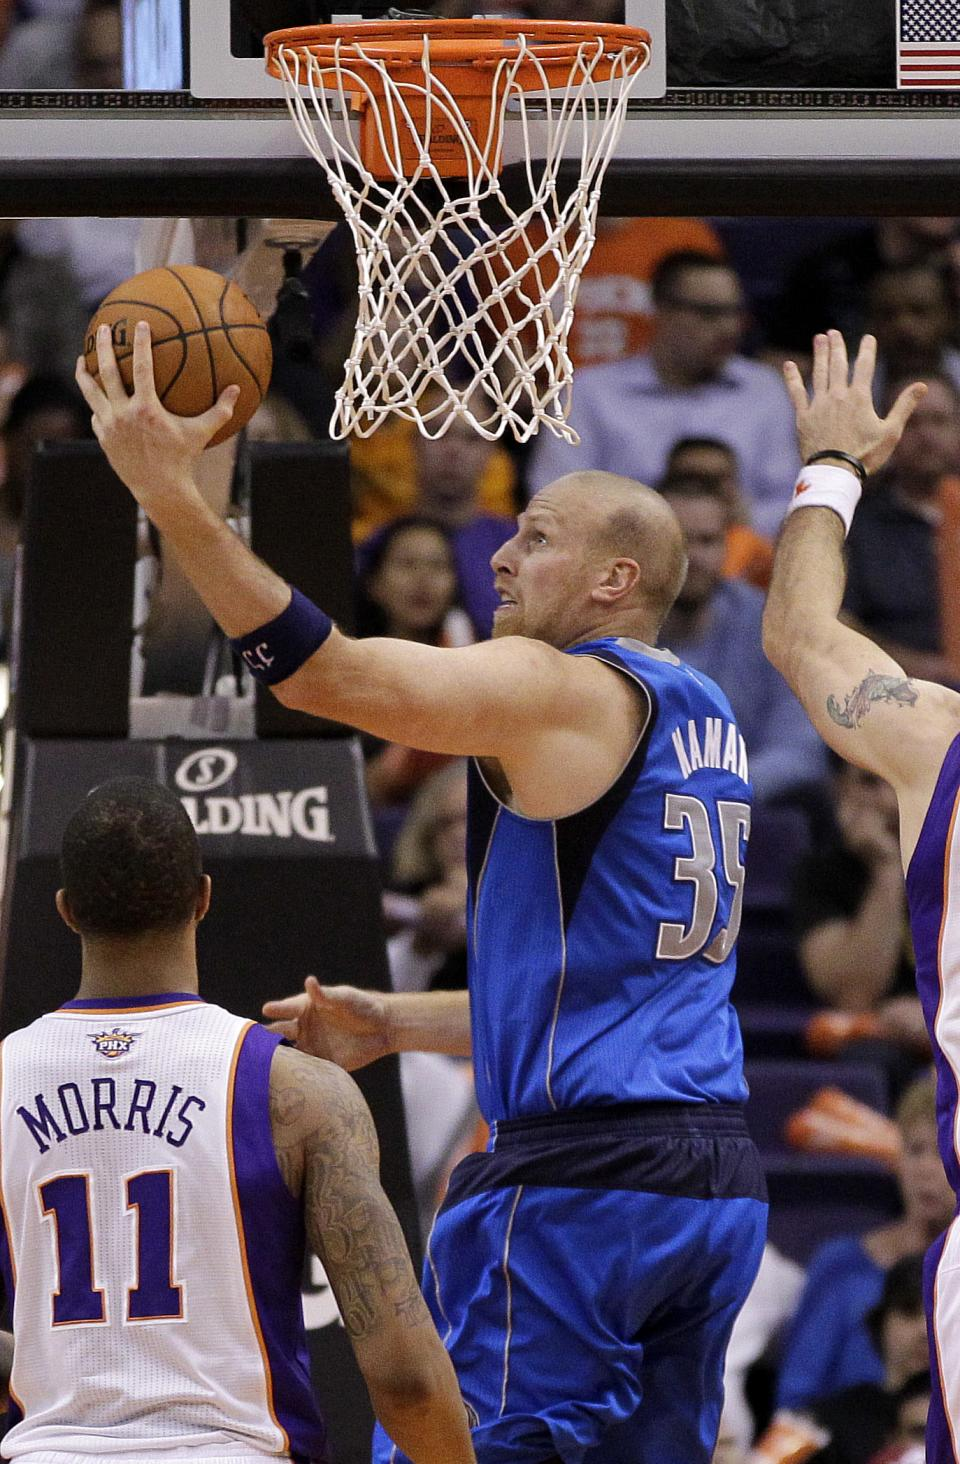 Dallas Mavericks' Chris Kaman drives against the Phoenix Suns during the second half of an NBA basketball game, Thursday, Dec. 6, 2012, in Phoenix. (AP Photo/Matt York)